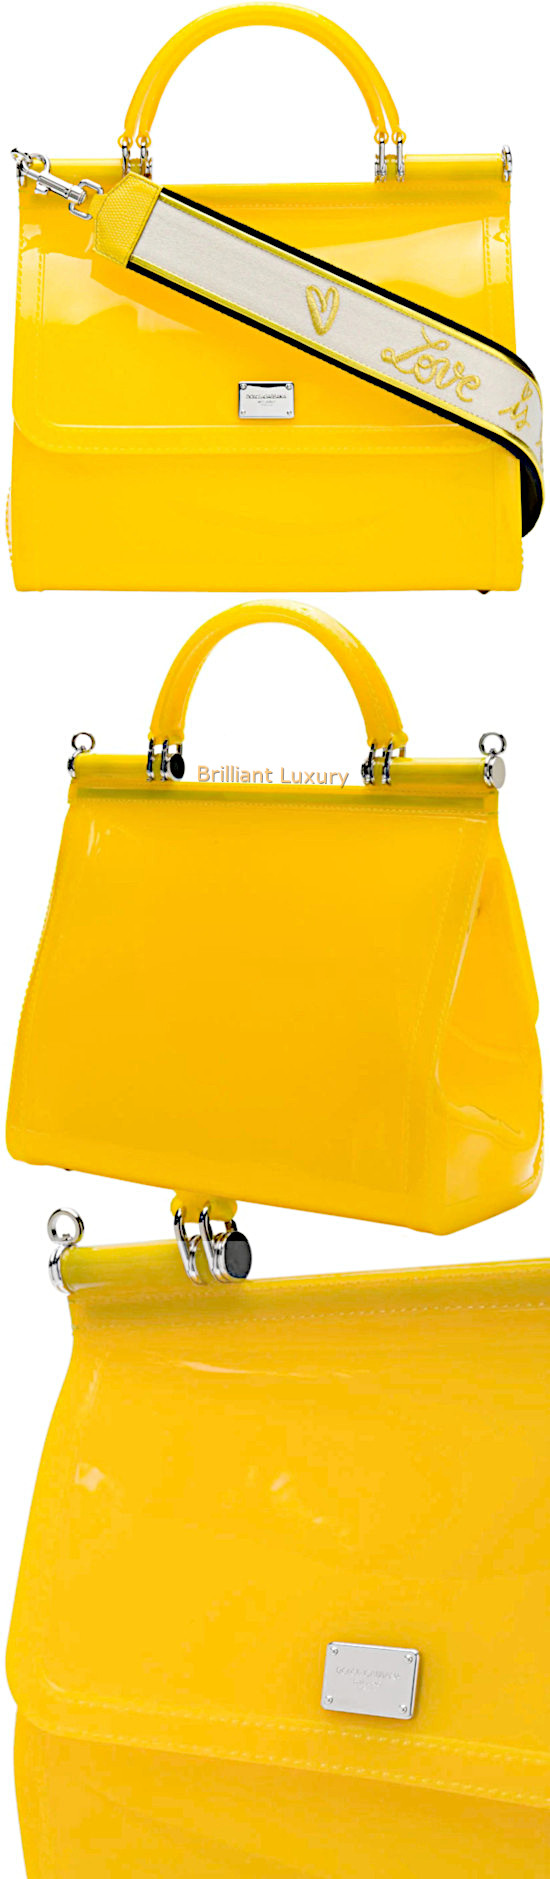 Dolce & Gabbana Sicily shoulder bag in yellow